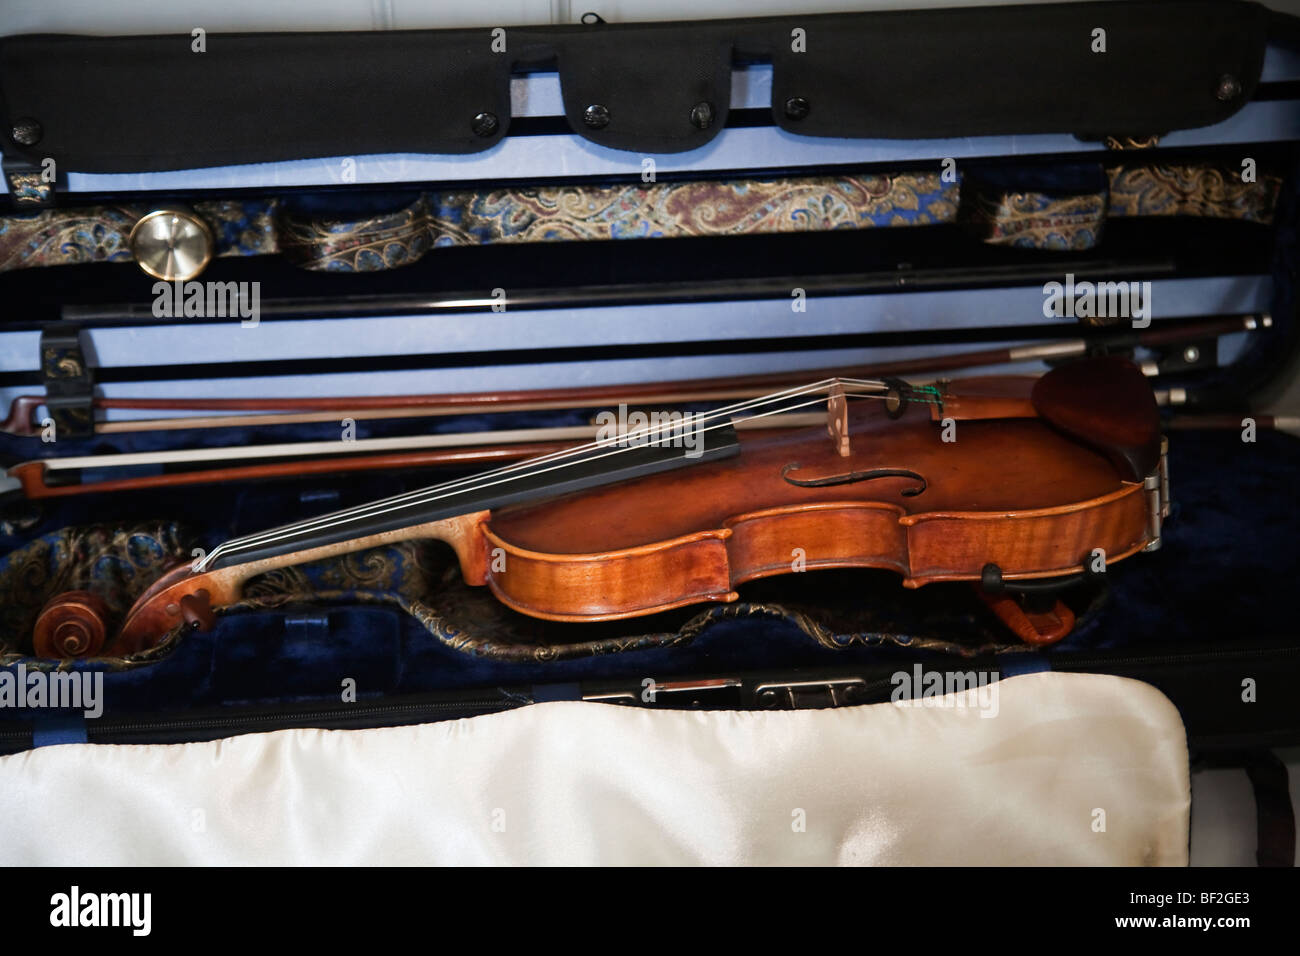 string instruments musical instruments bow violin bow - Stock Image